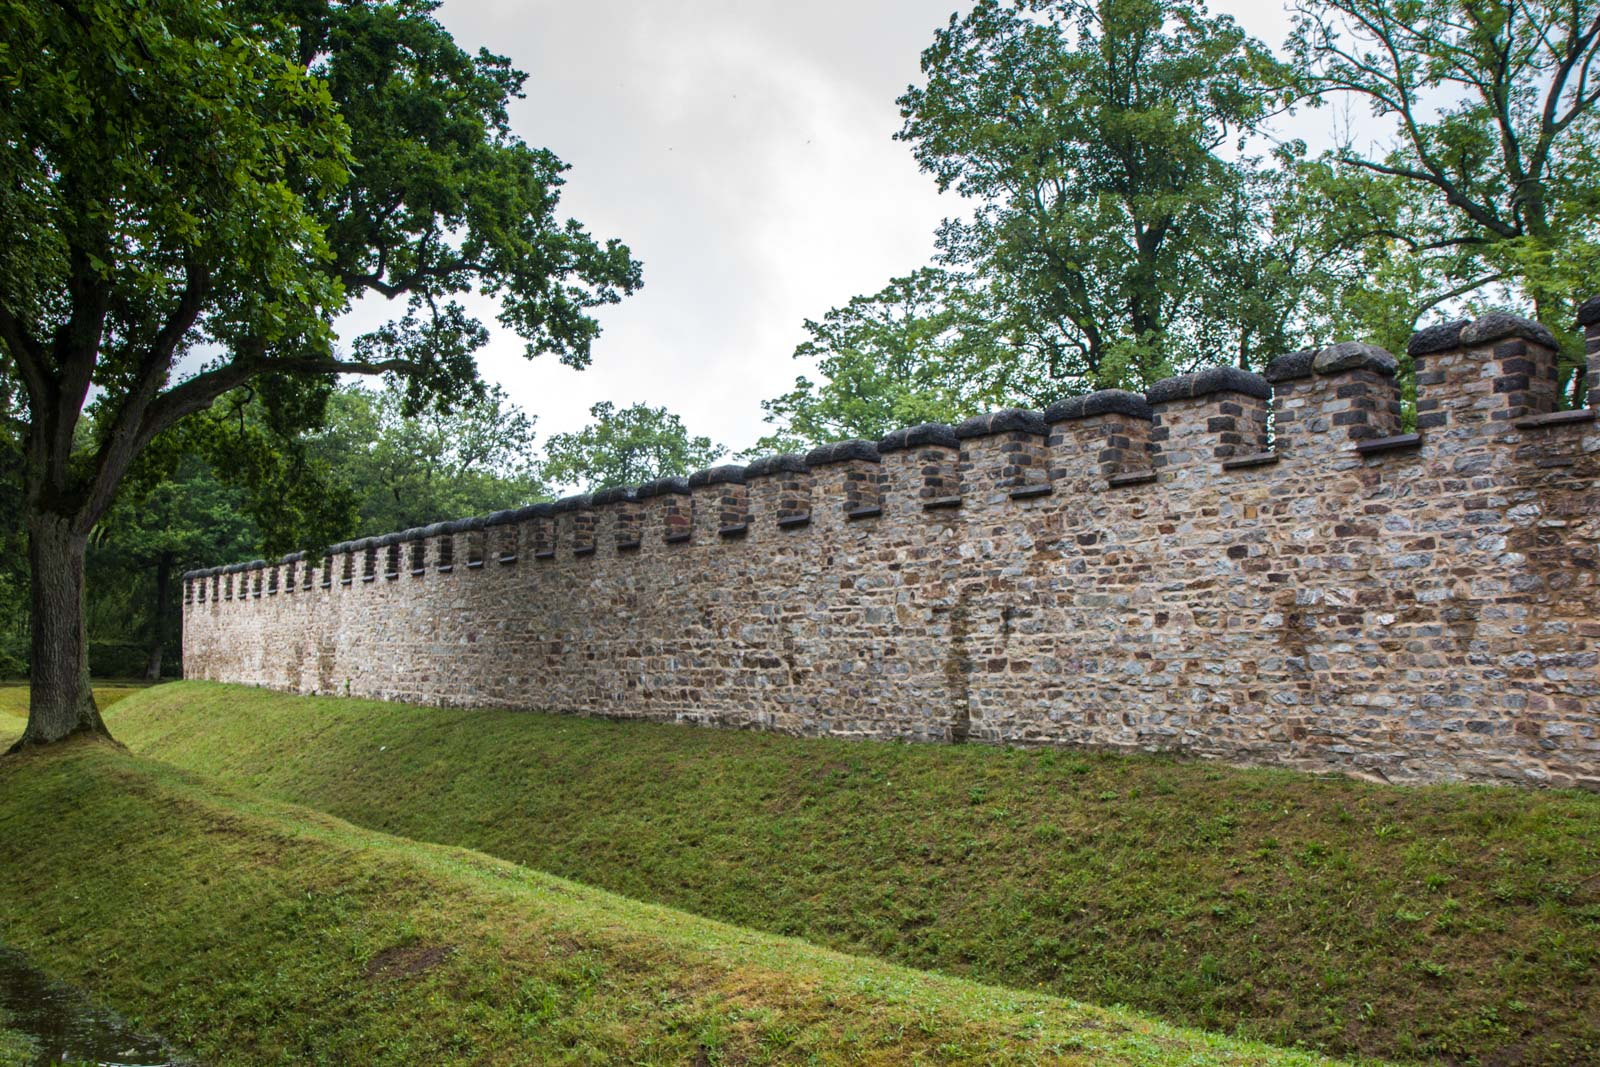 Saalburg Fort, Bad Homburg, Germany